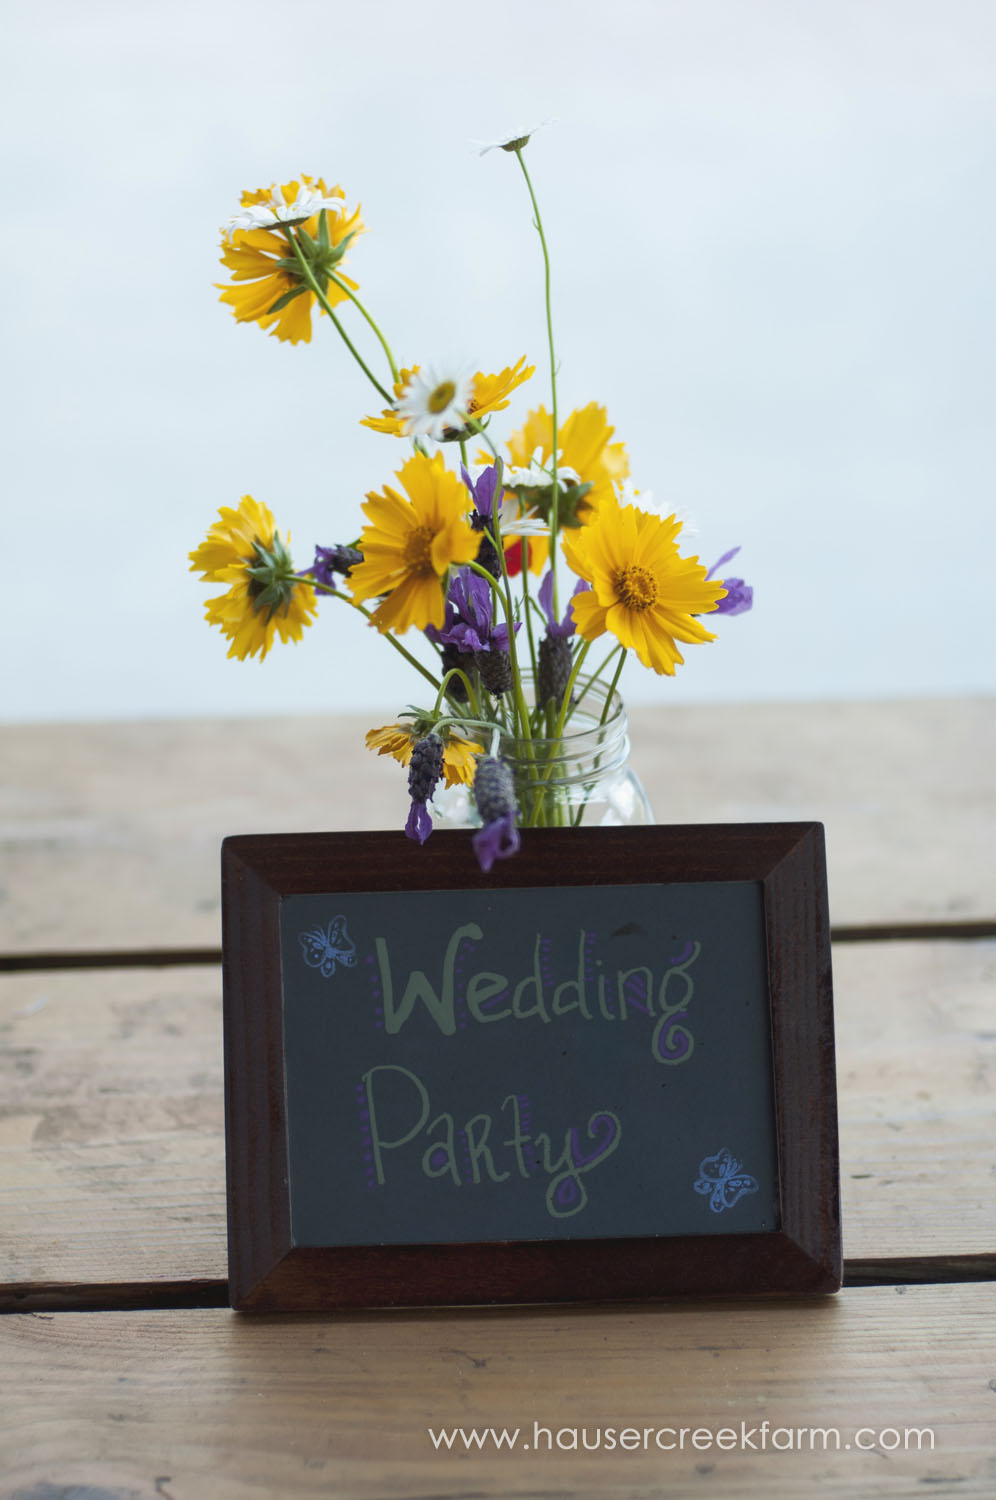 wedding-flowers-hauser-creek-farm-a-photo-by-ashley-0919.jpg